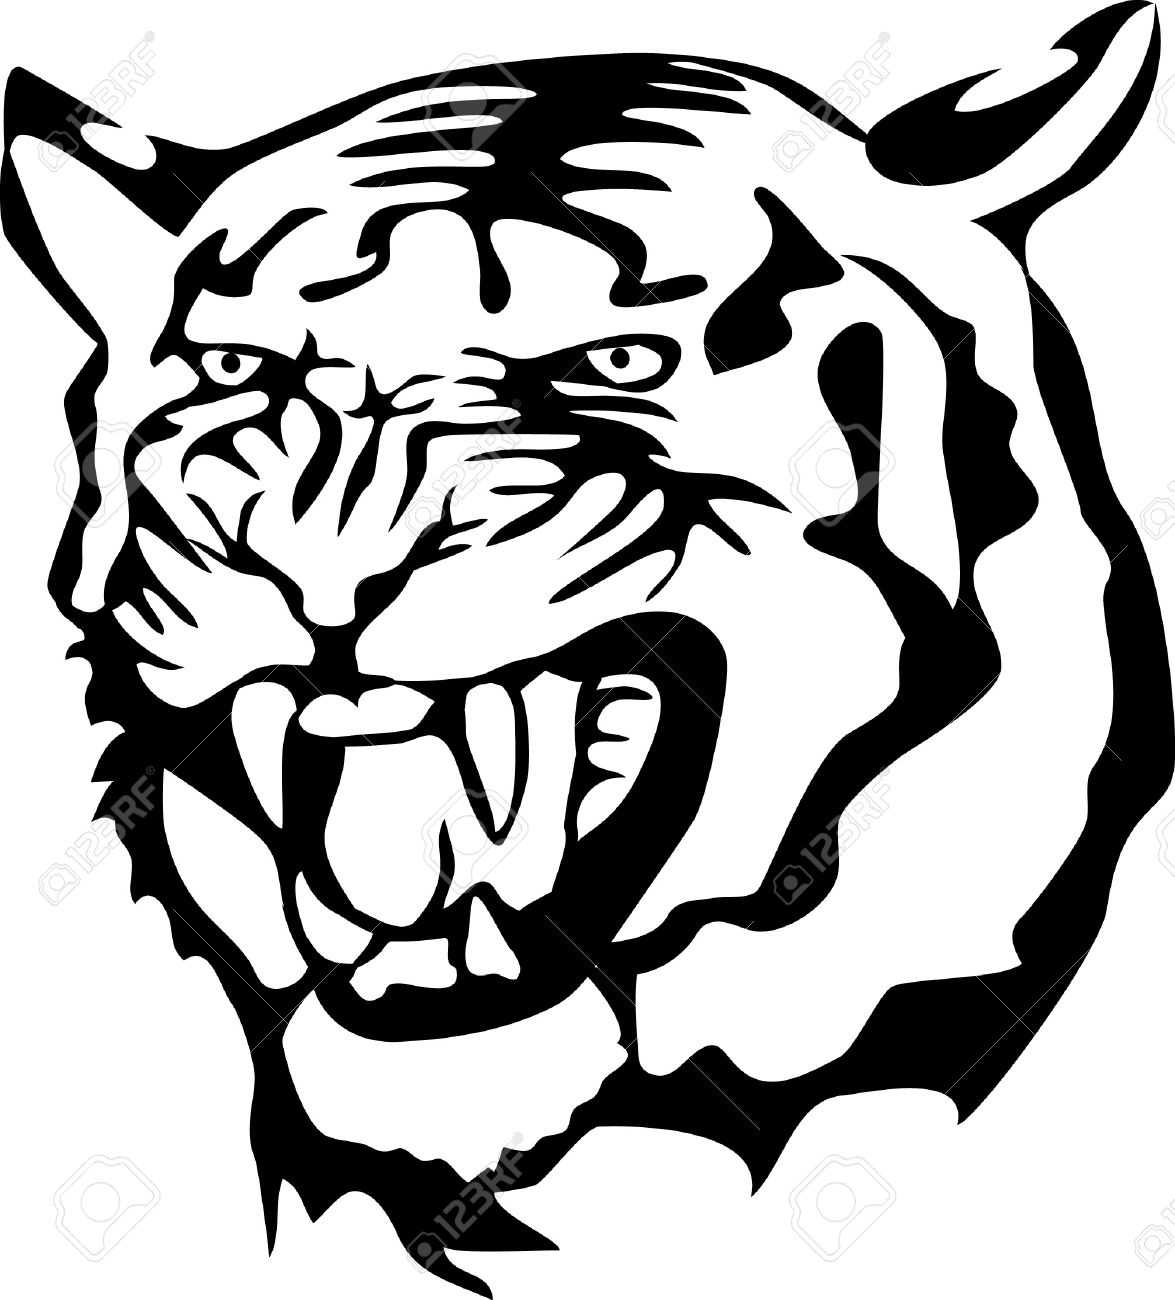 Wildcat clipart vector. Collection of free download